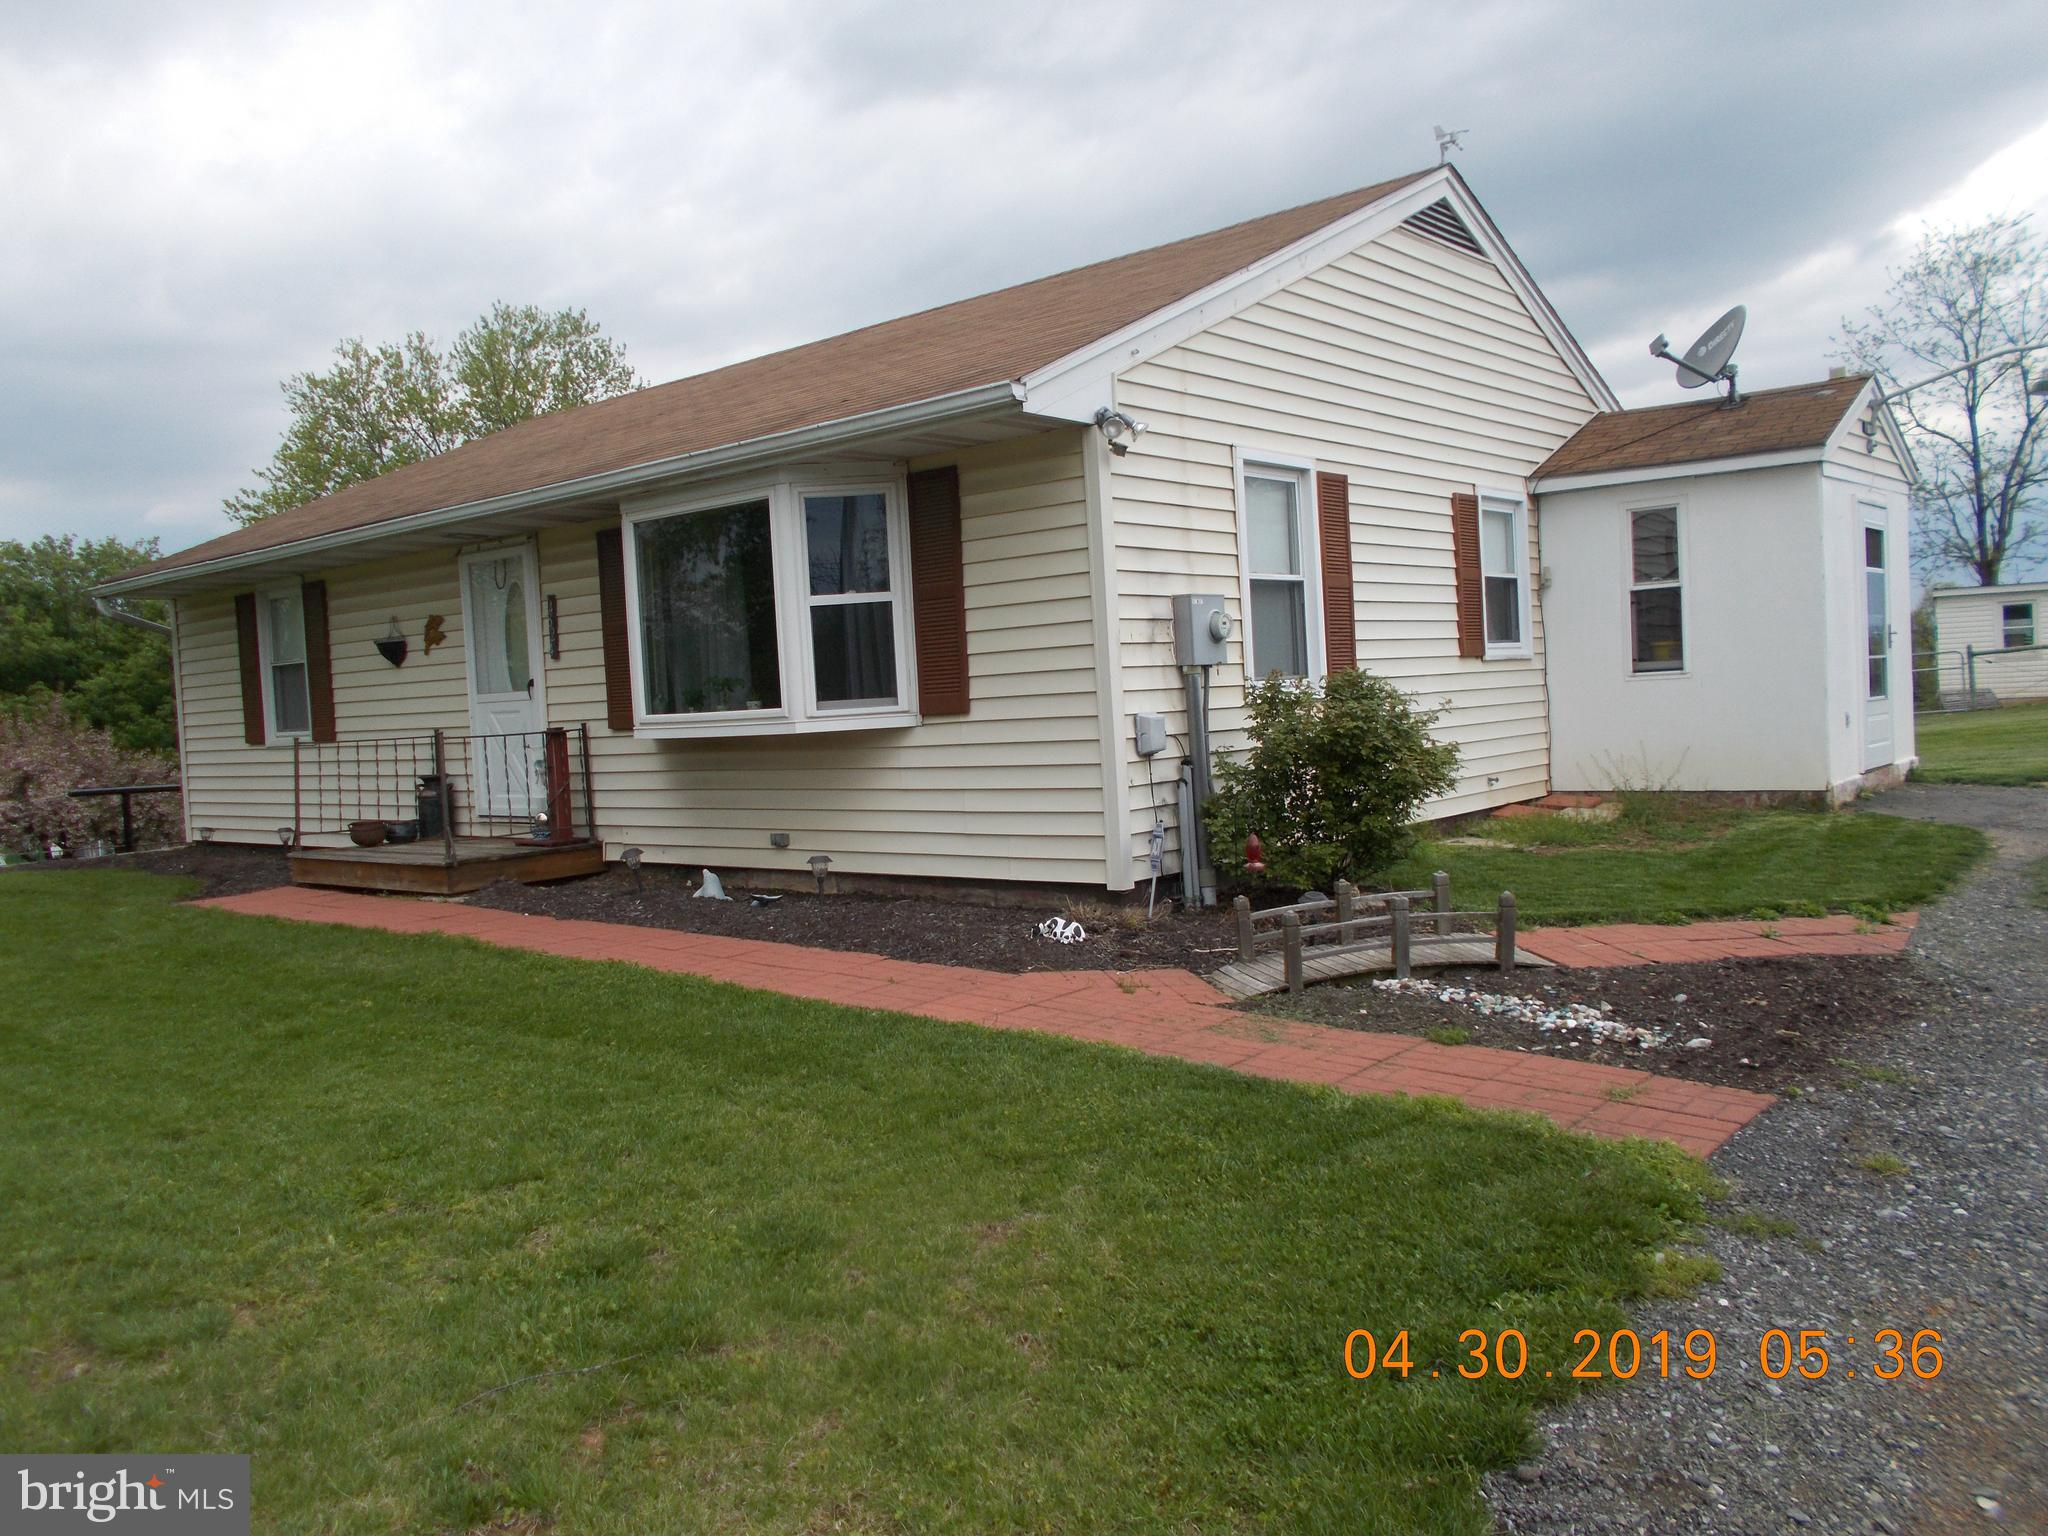 14824 HICKSVILLE ROAD, CLEAR SPRING, MD 21722